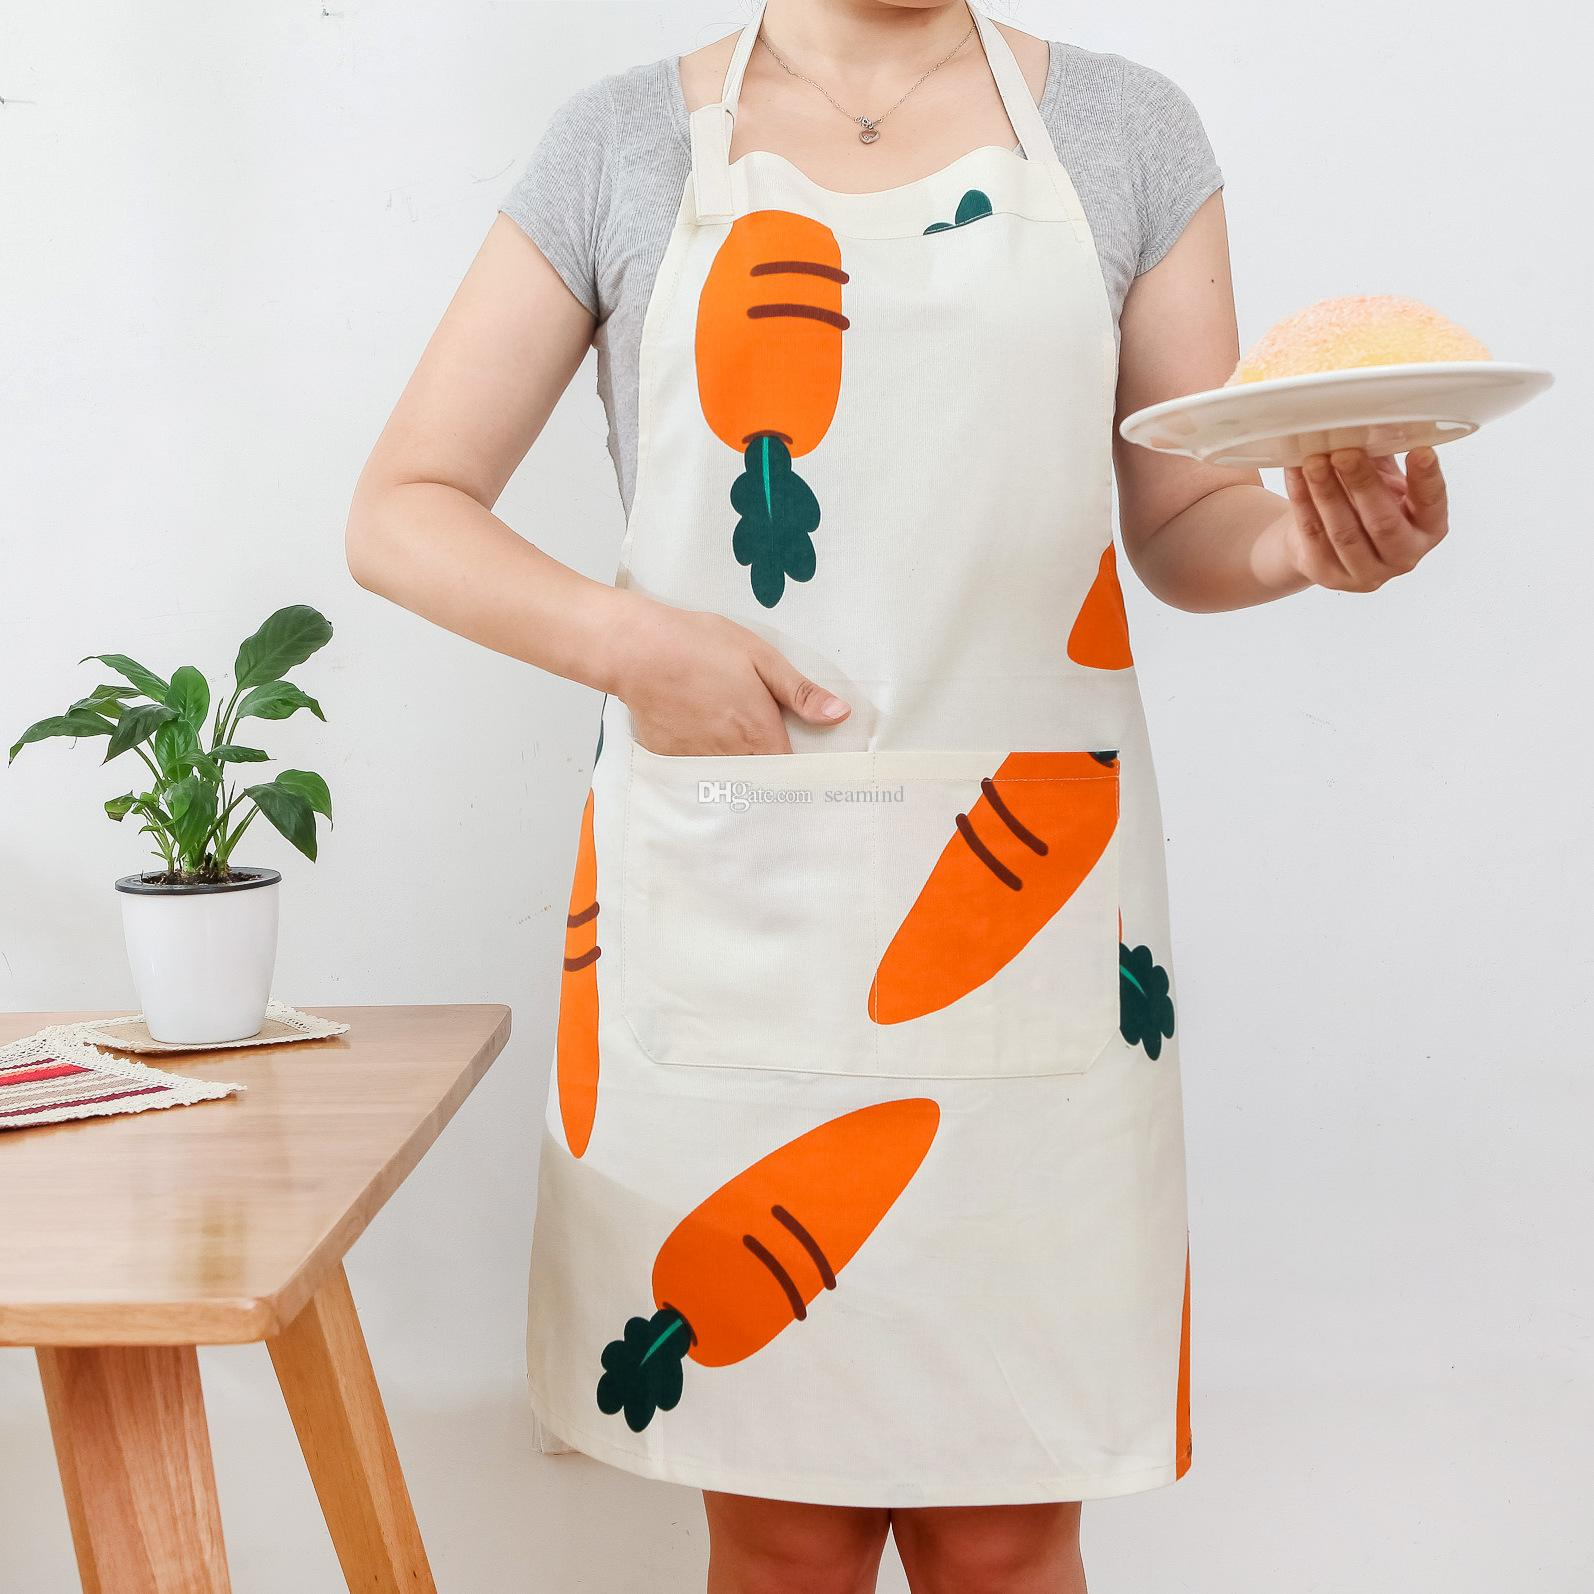 Cotton Linen Kitchen Apron Kids Women Apron Barbecue Restaurant ...